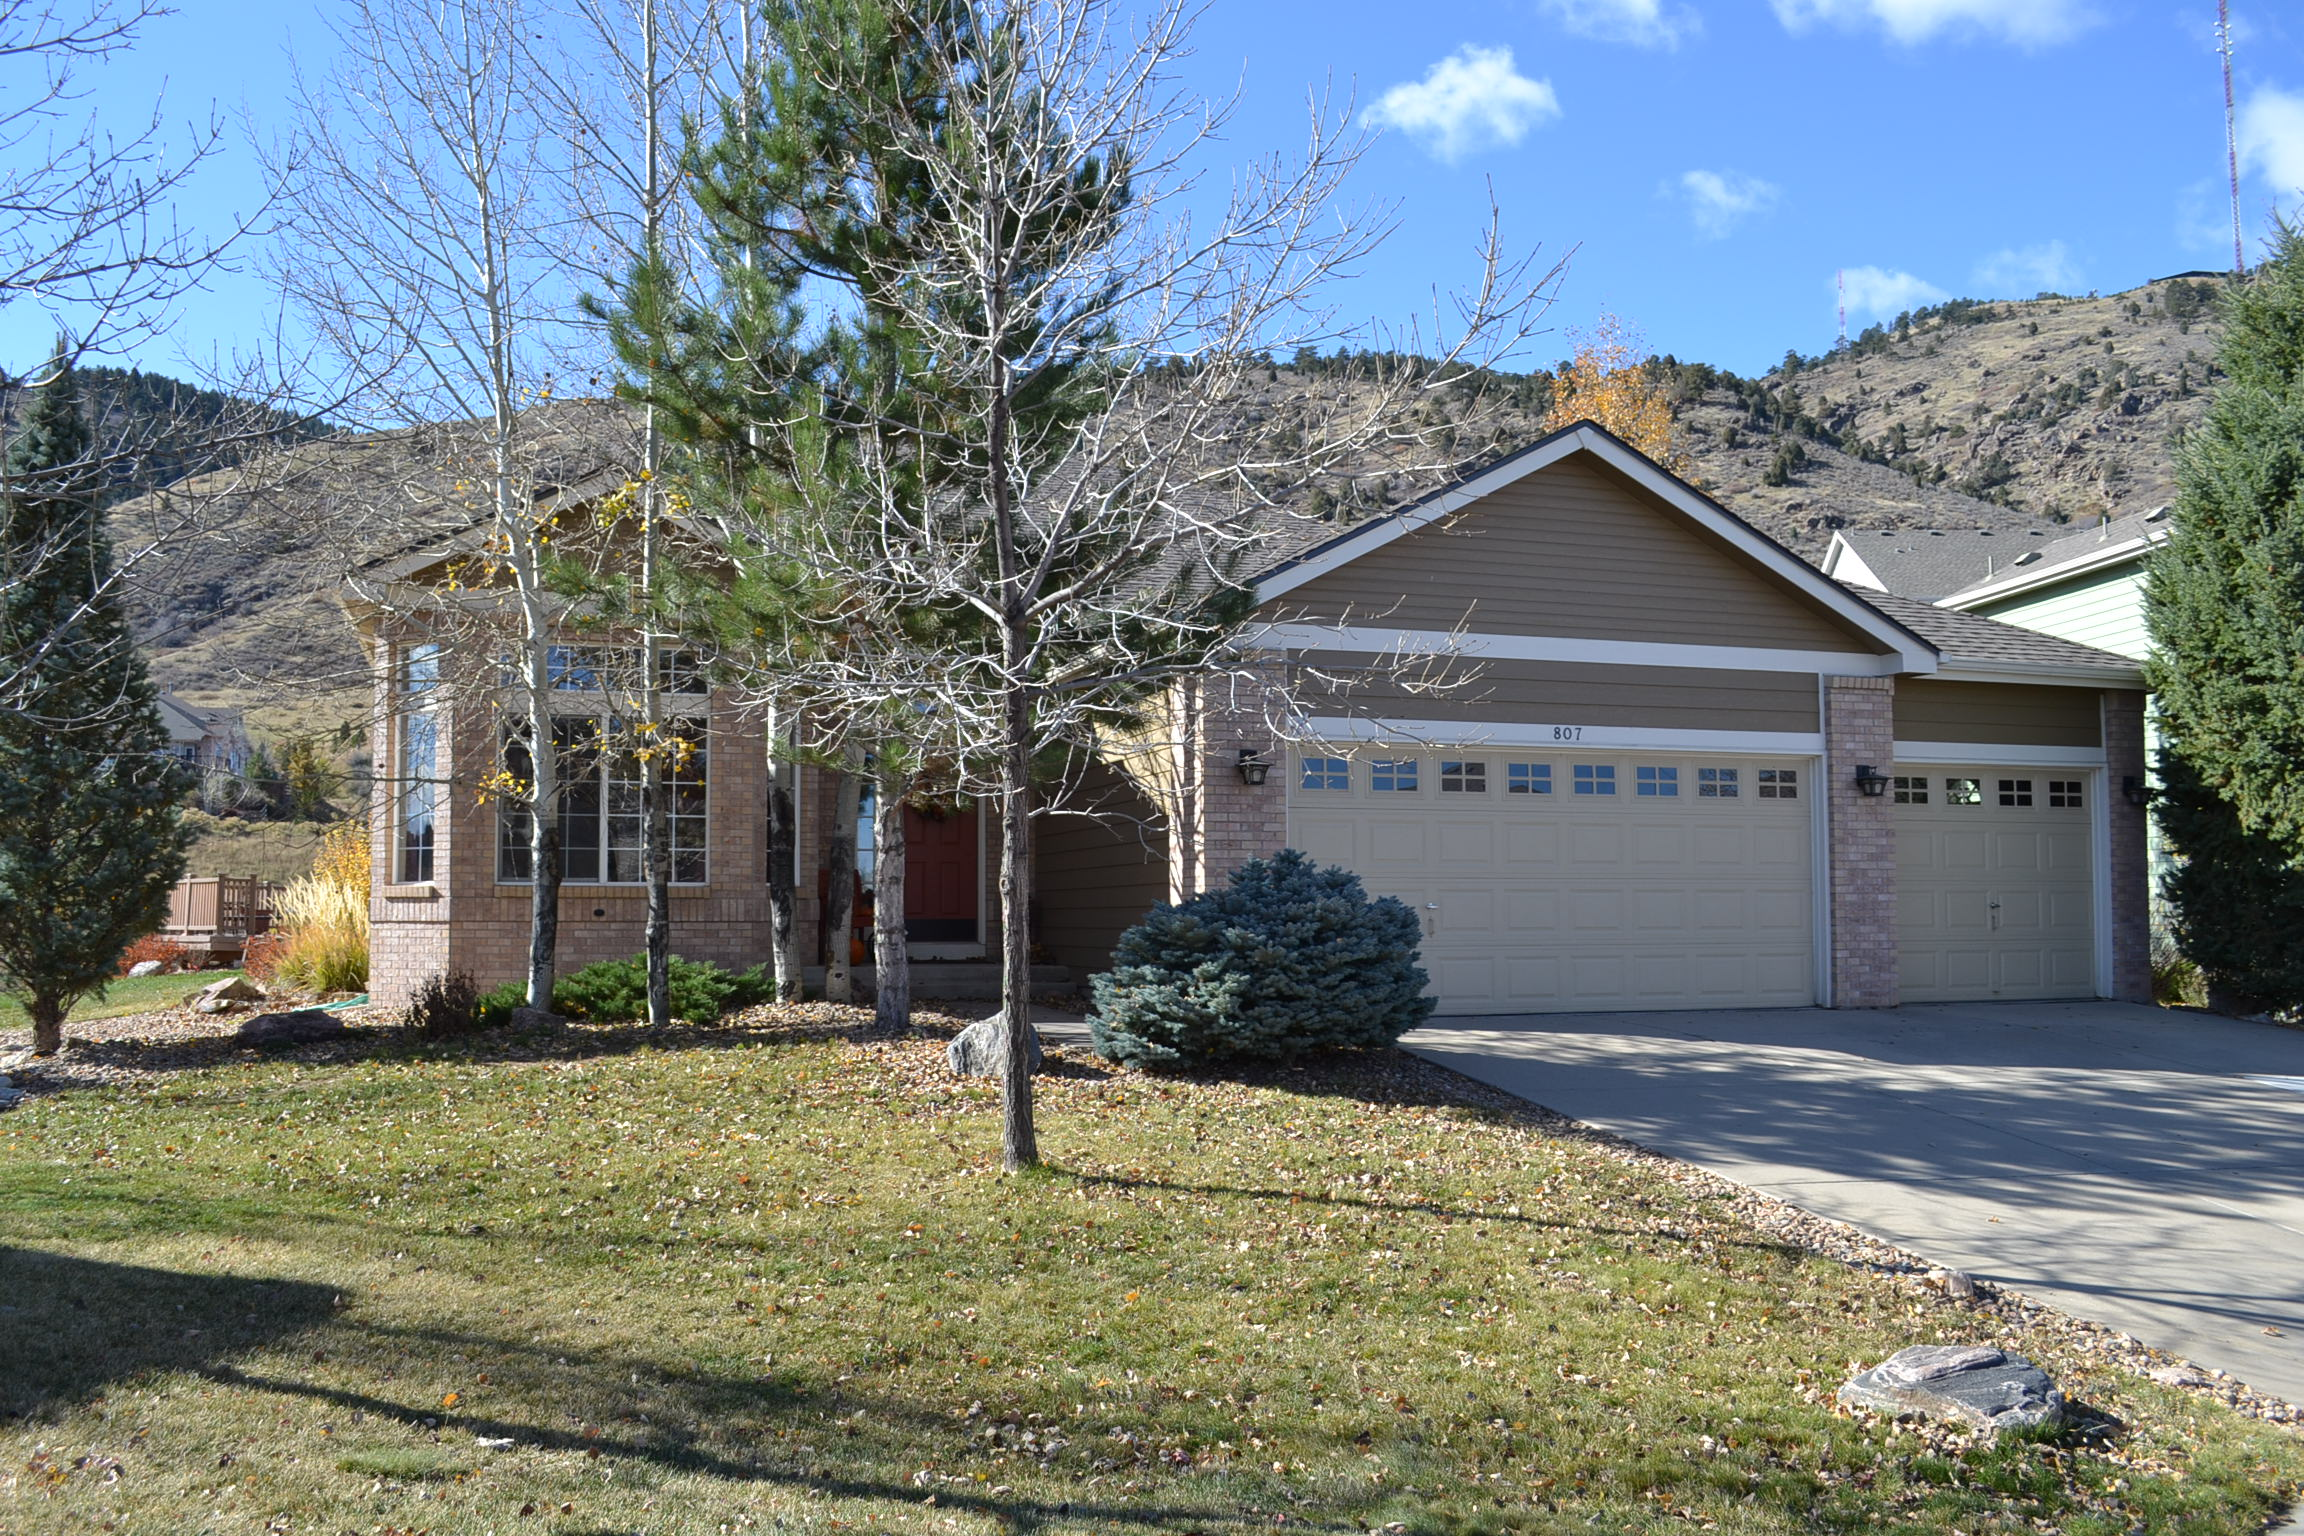 homes for sale in eagle ridge neighborhood golden co jeff fox at